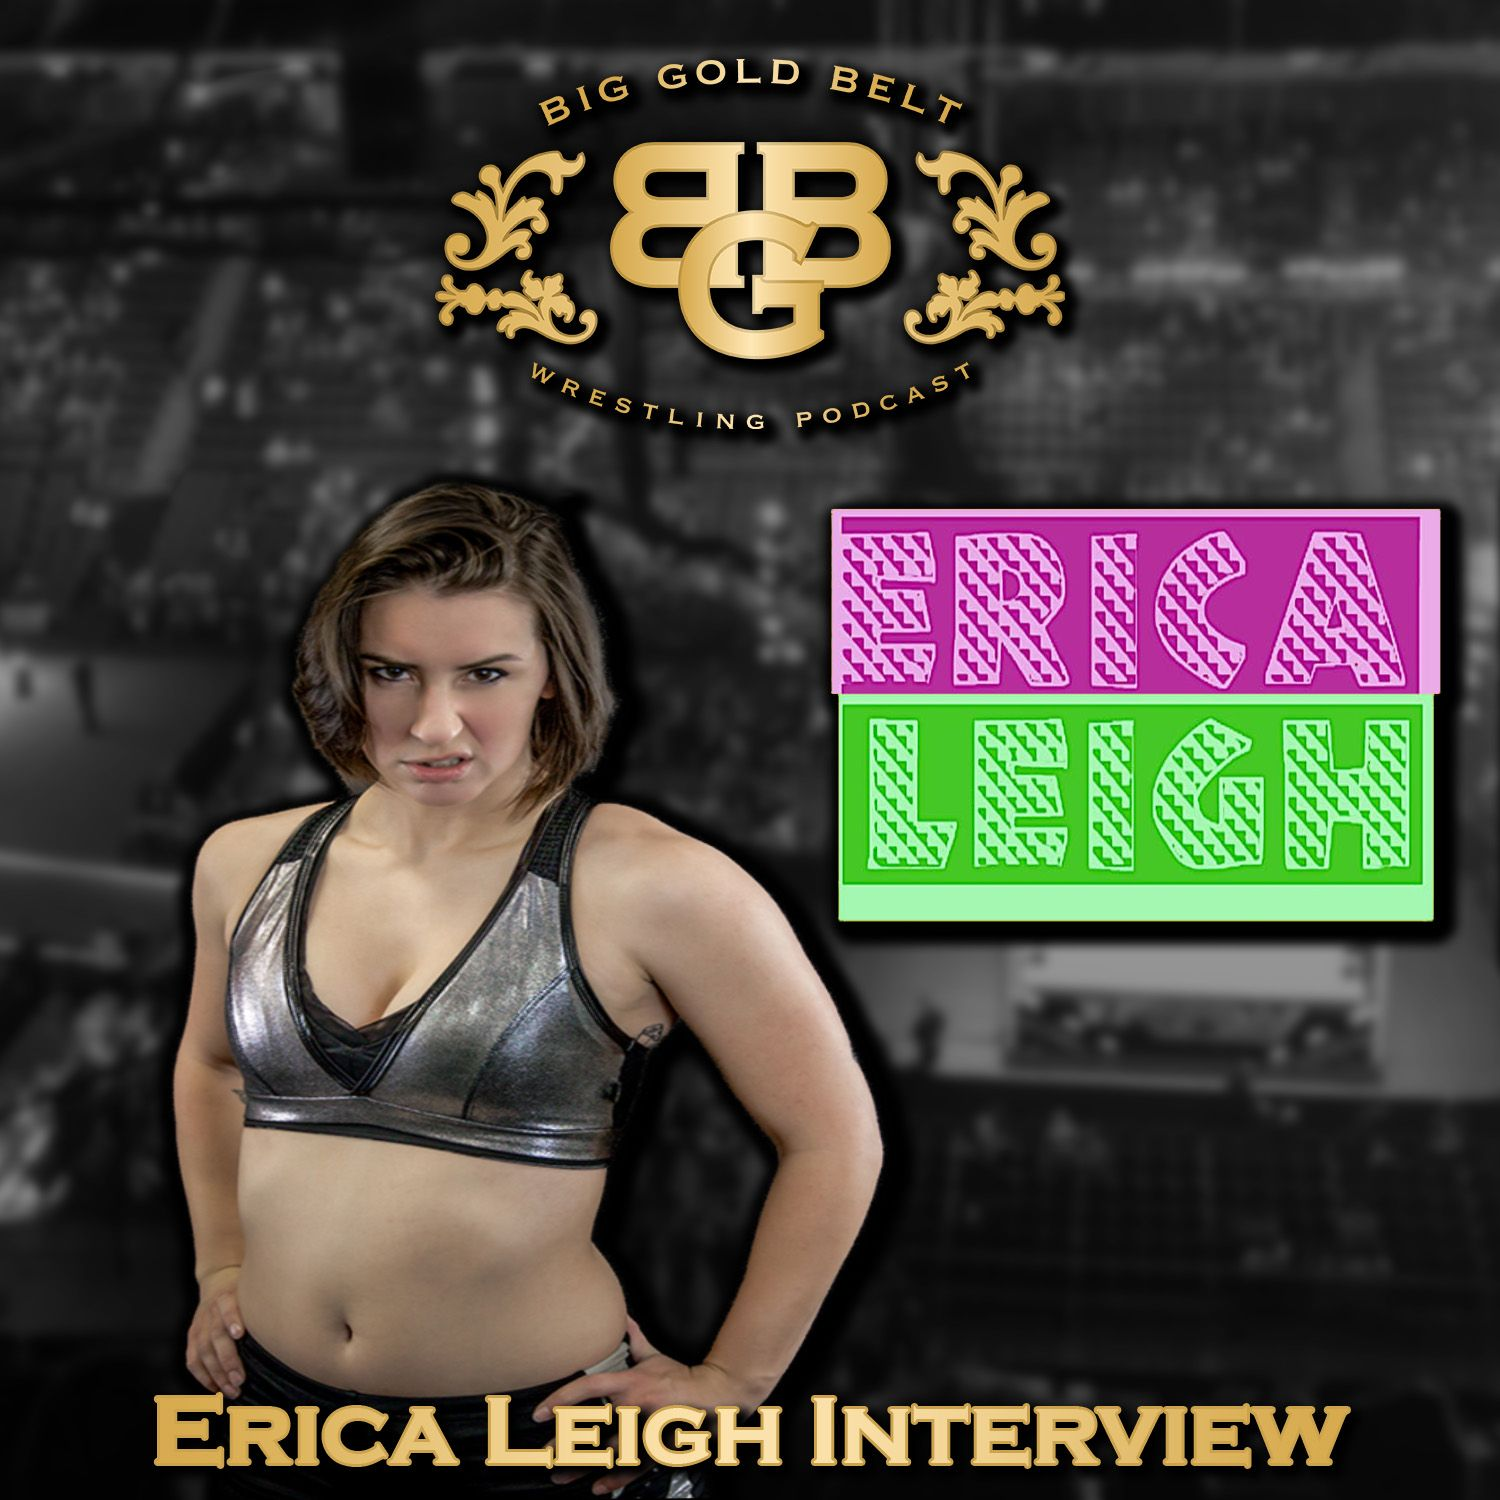 50ec9682e6e64 Erica Leigh Interview | Big Gold Belt Podcast